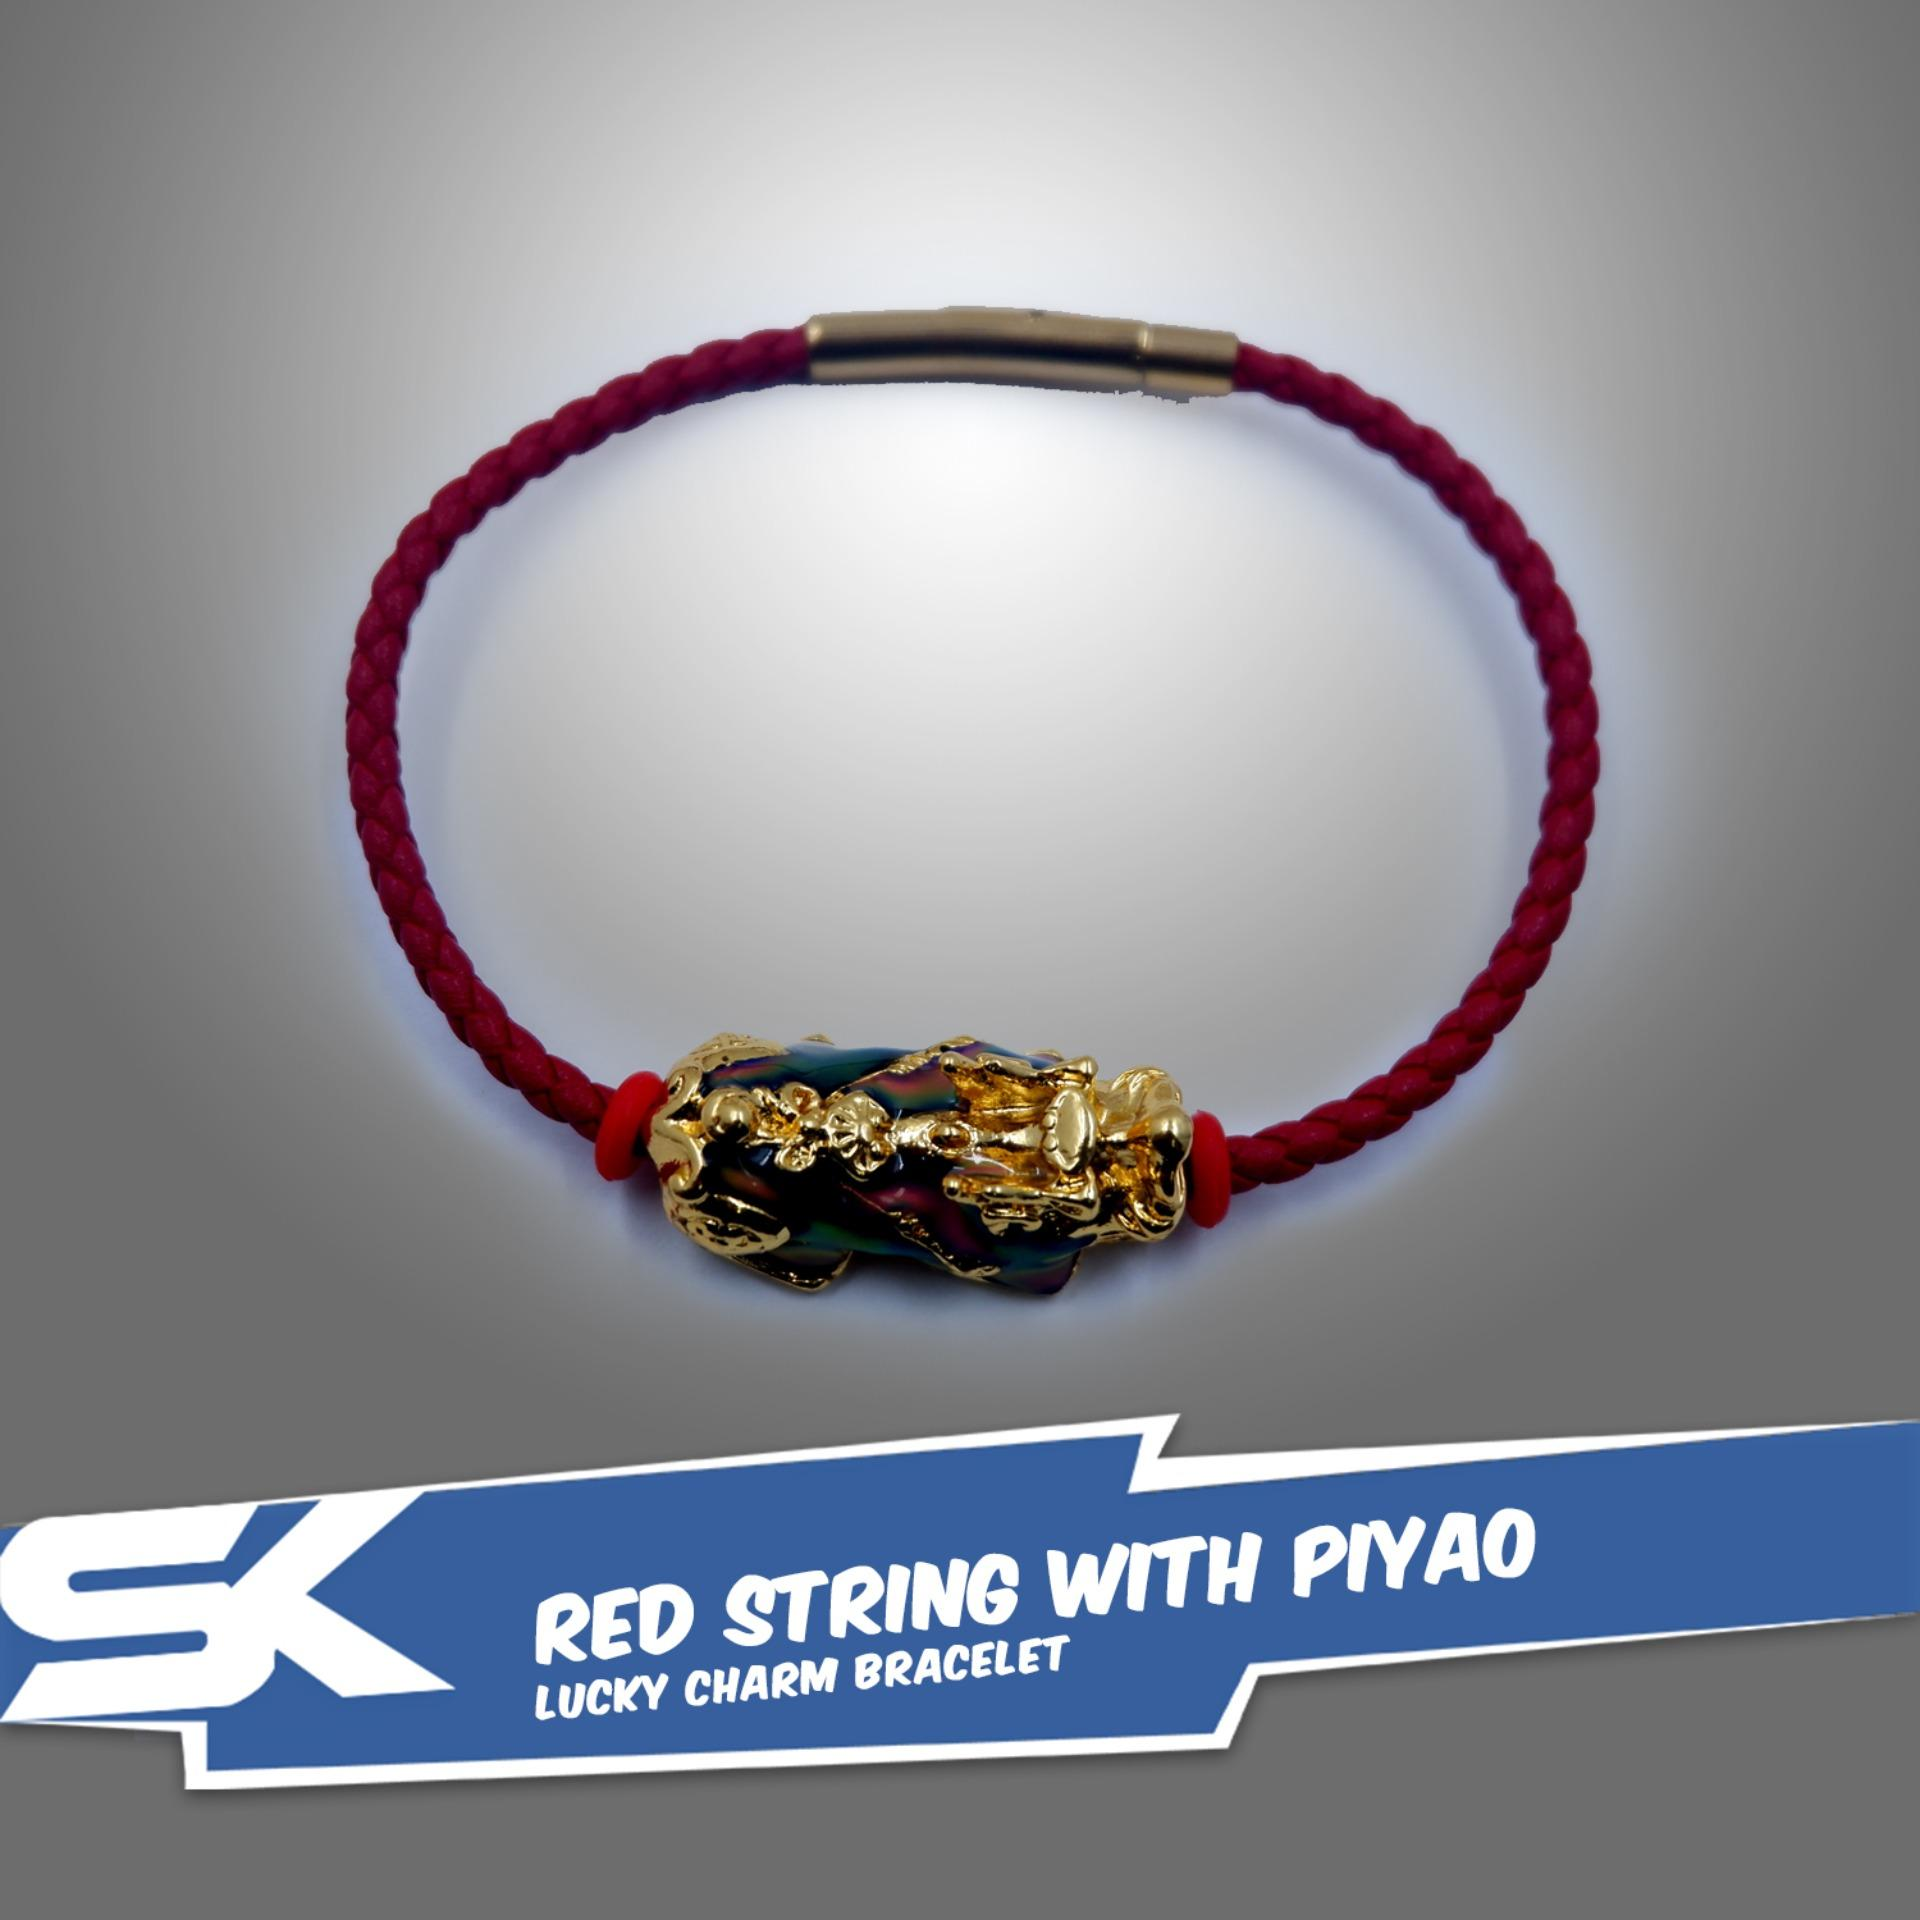 Red String with Piyao Lucky Charm Bracelet image